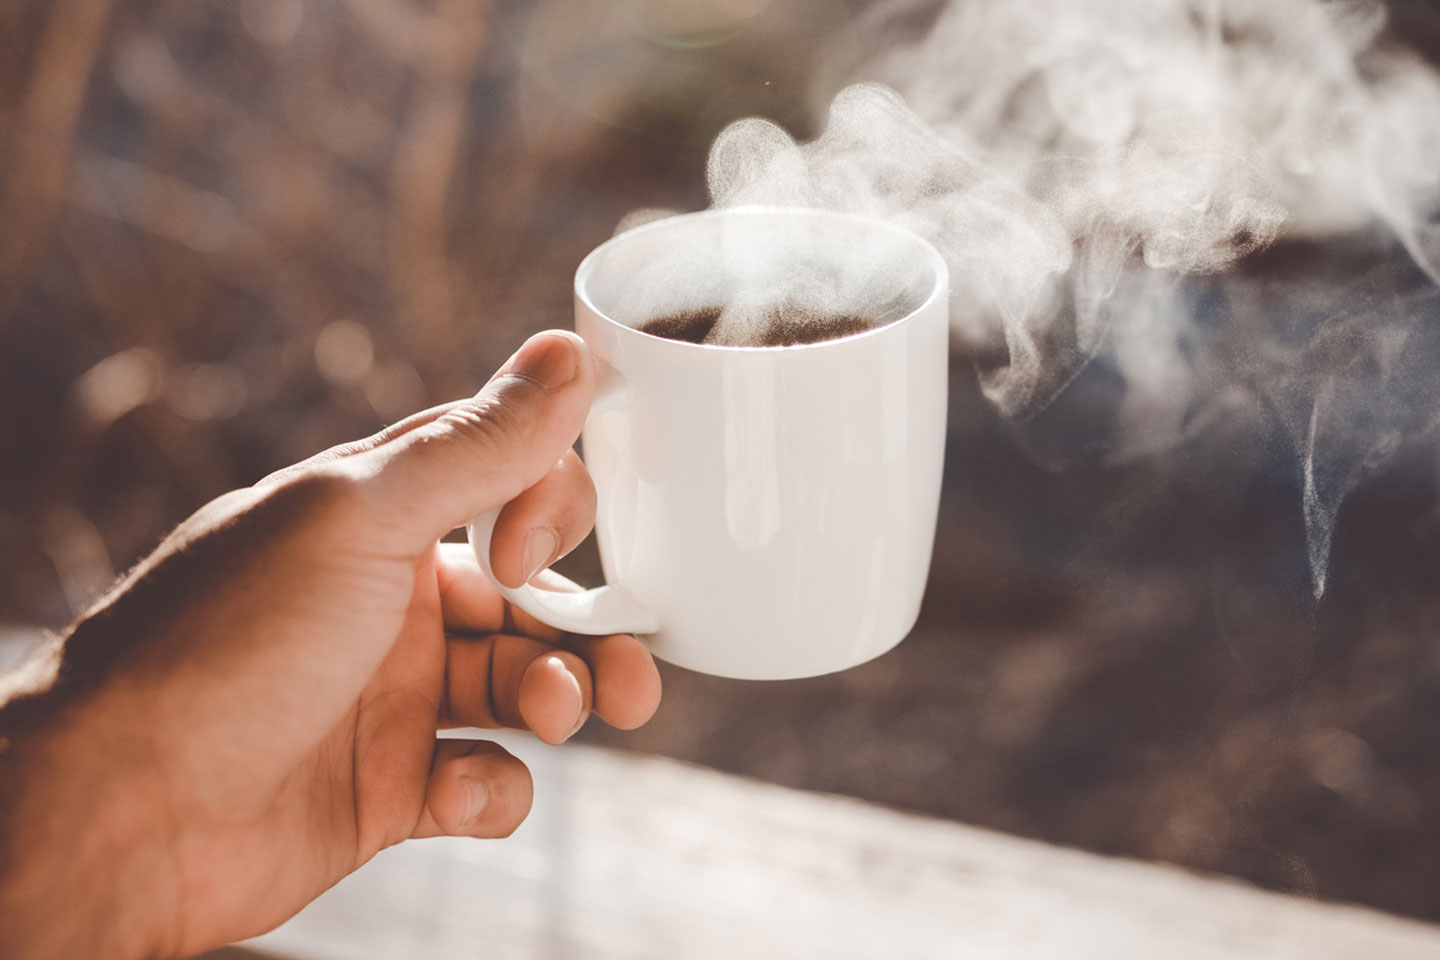 a hand is holding a cup of coffee